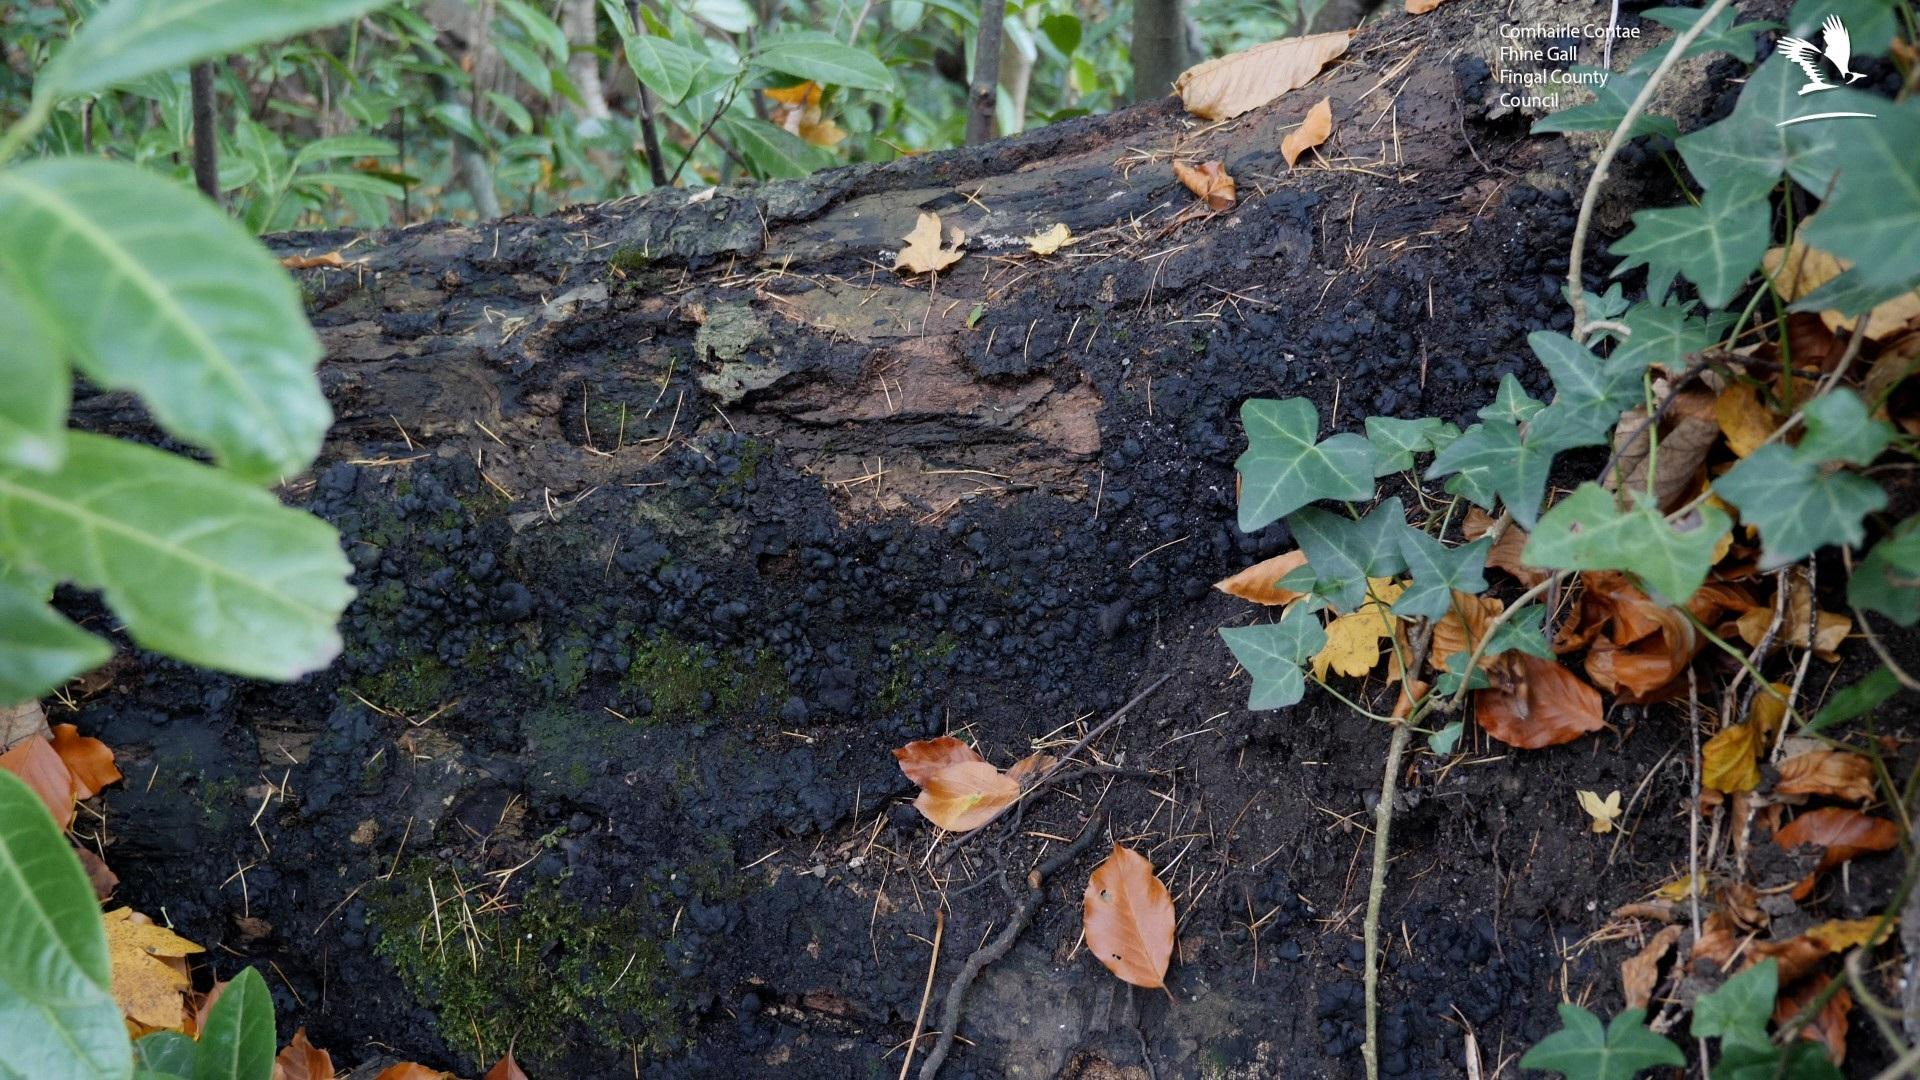 A picture of the Ustulina fungus on a tree in Newbridge Demesne. Ustulina is a black sooty fungus that affects the root plate of a tree.